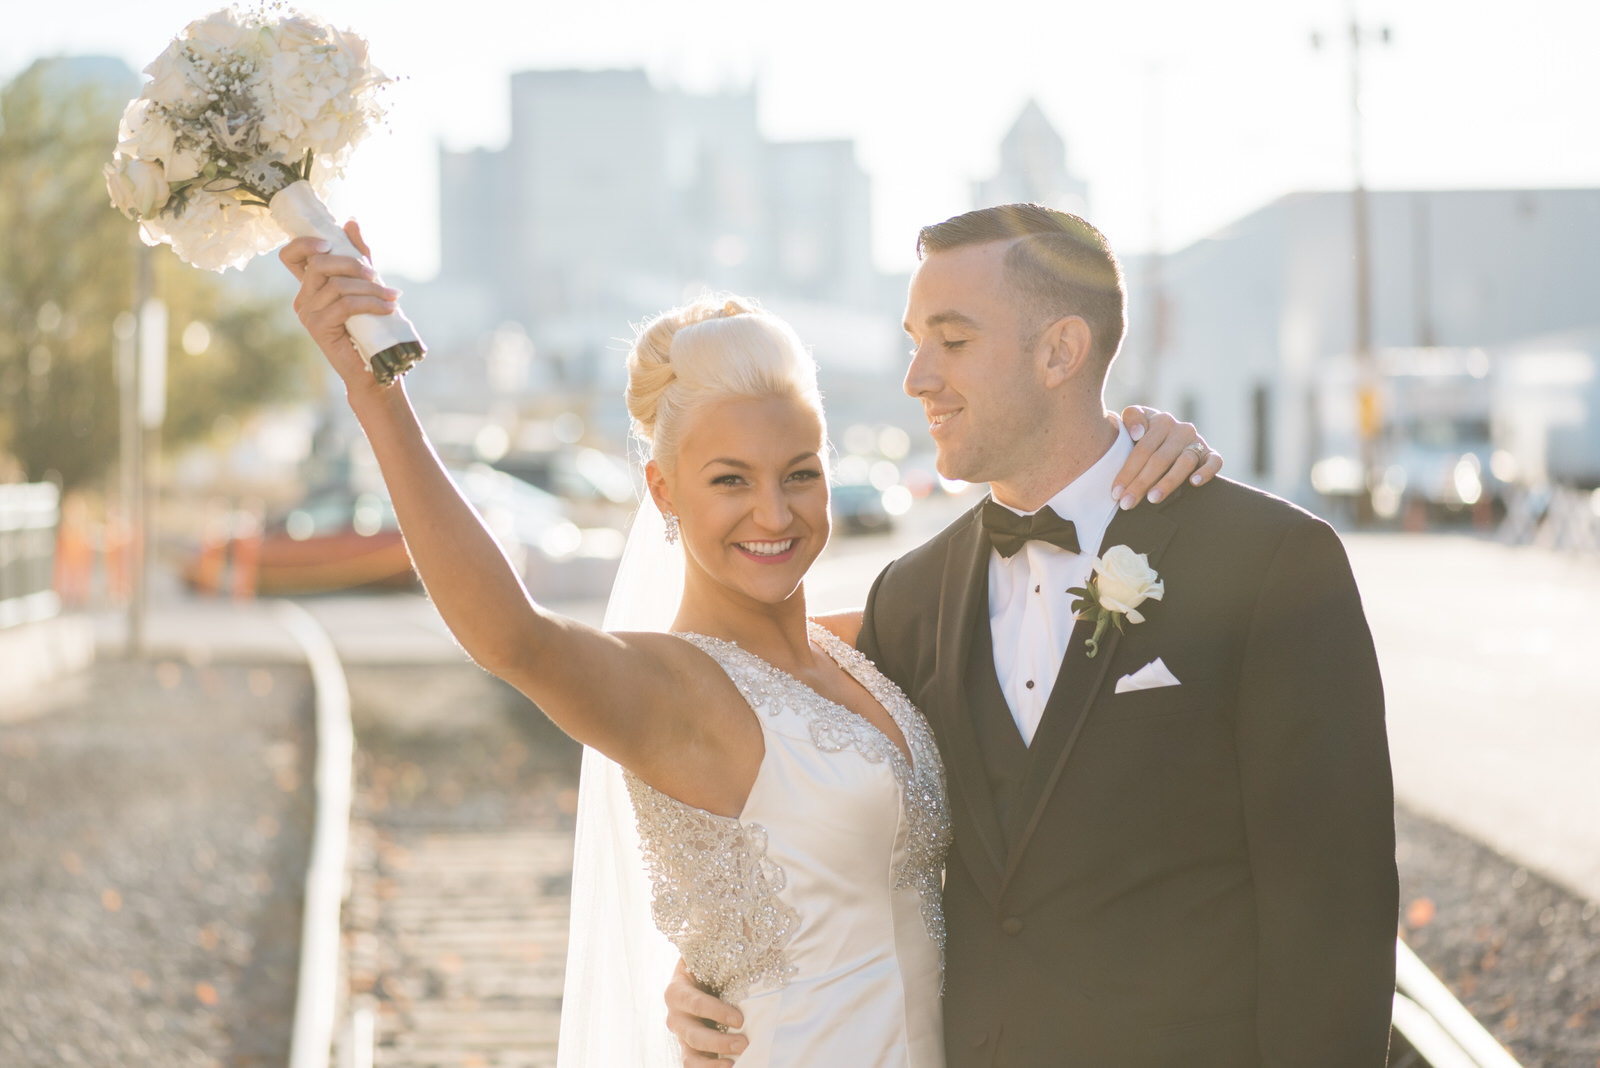 hilton_garden_inn_southpointe_pittsburgh_weddings_73.jpg